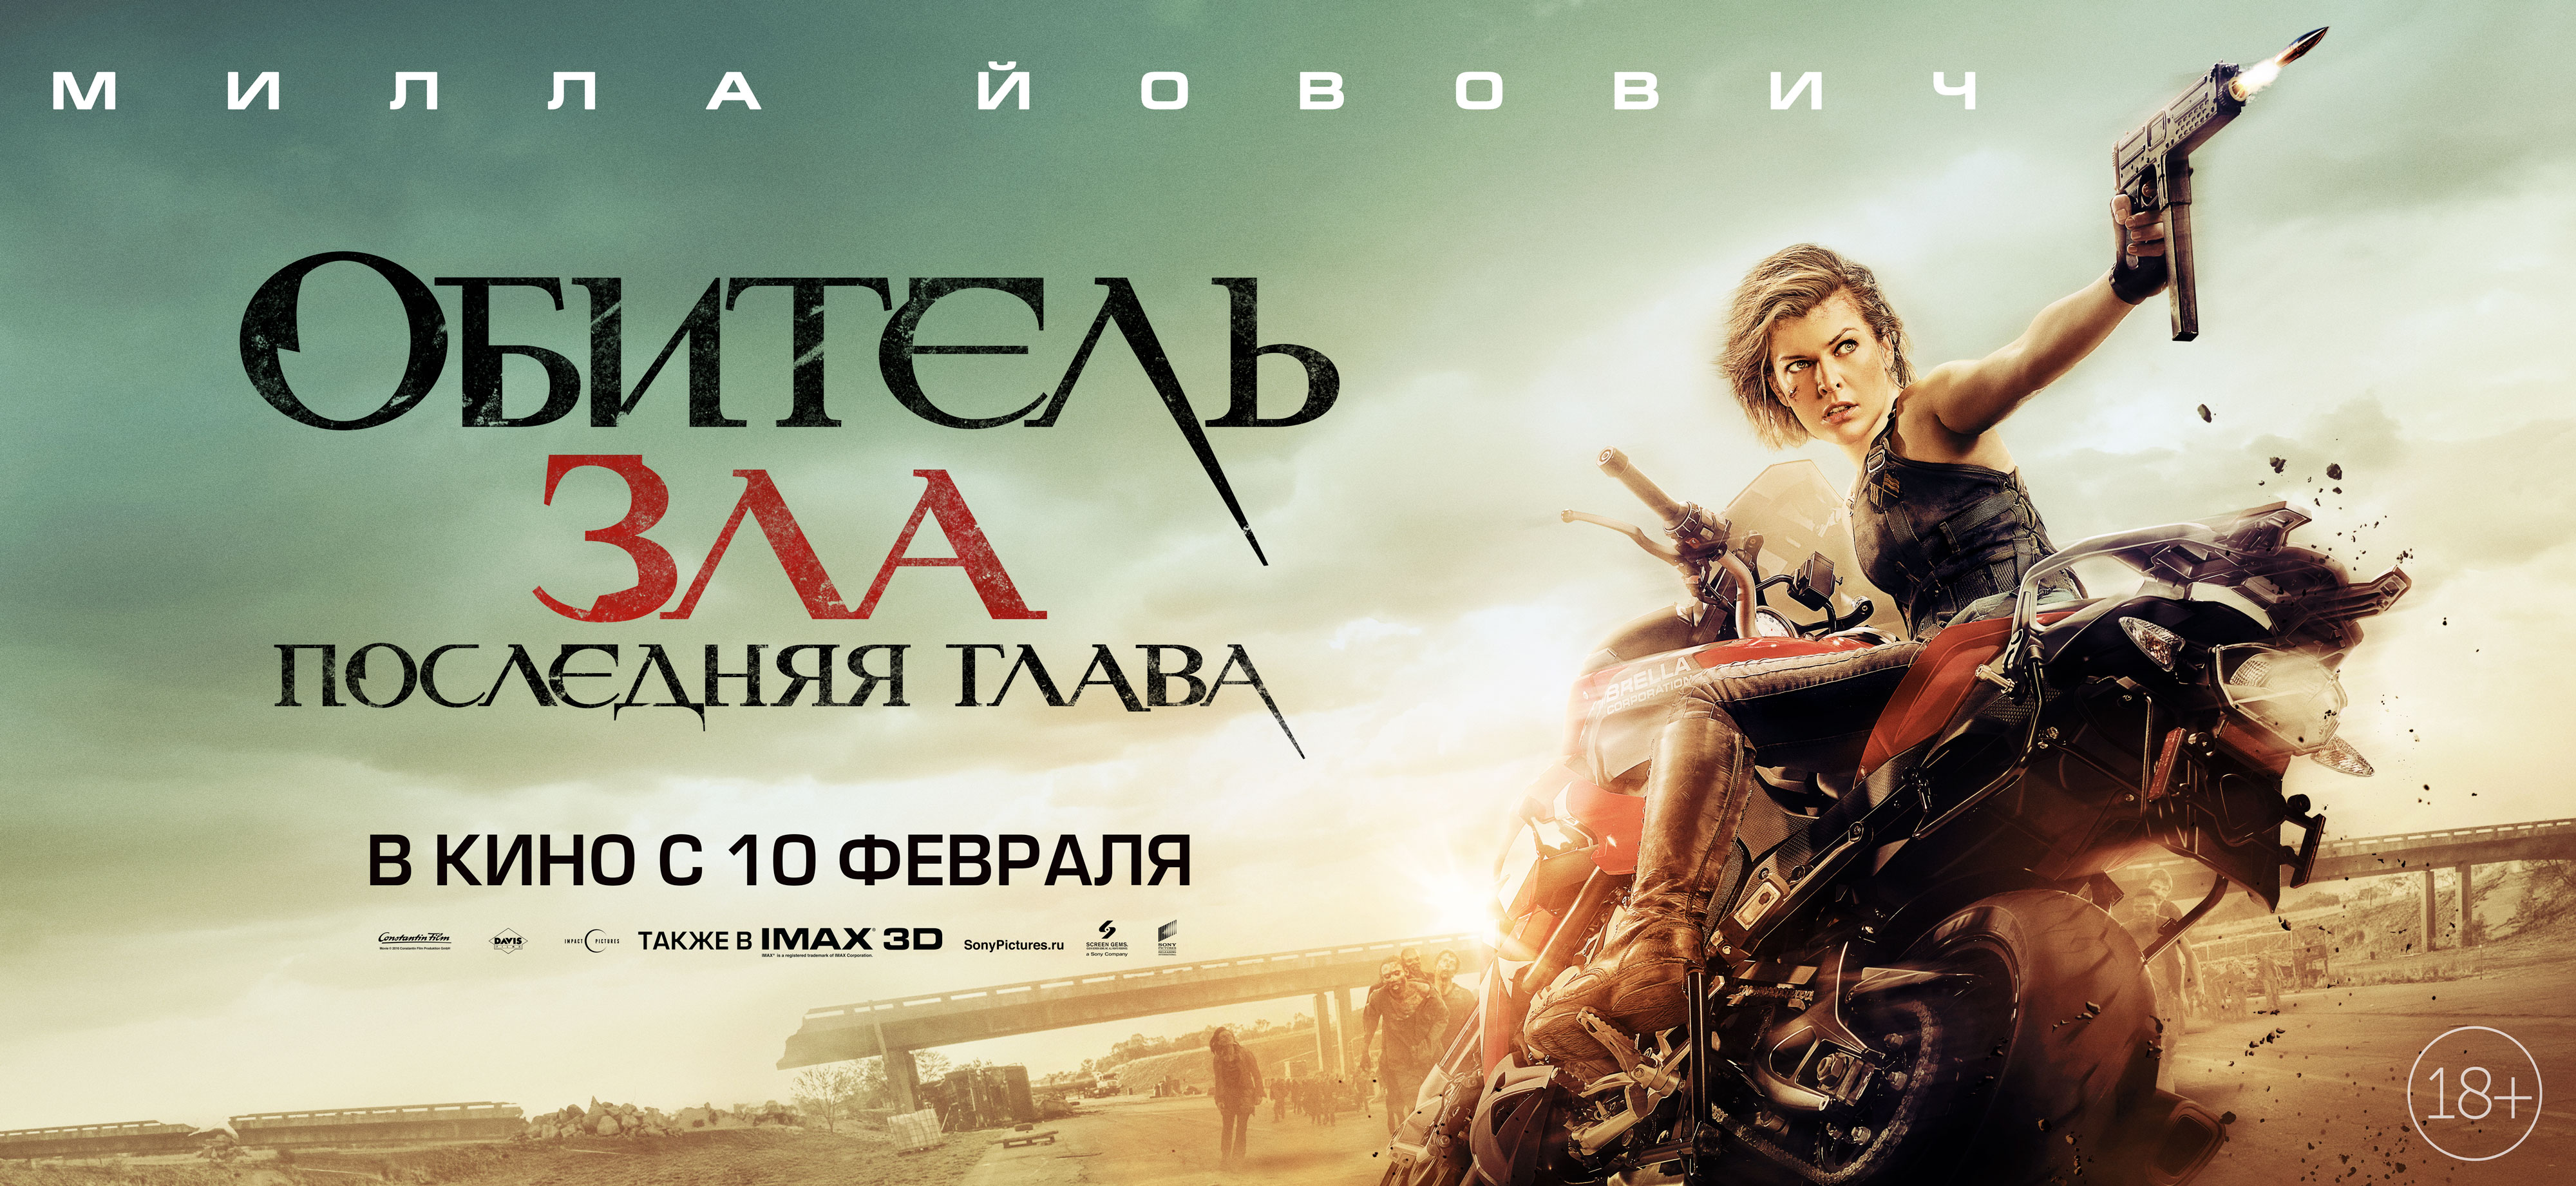 kinopoisk.ru-Resident-Evil_3A-The-Final-Chapter-2891454--o--